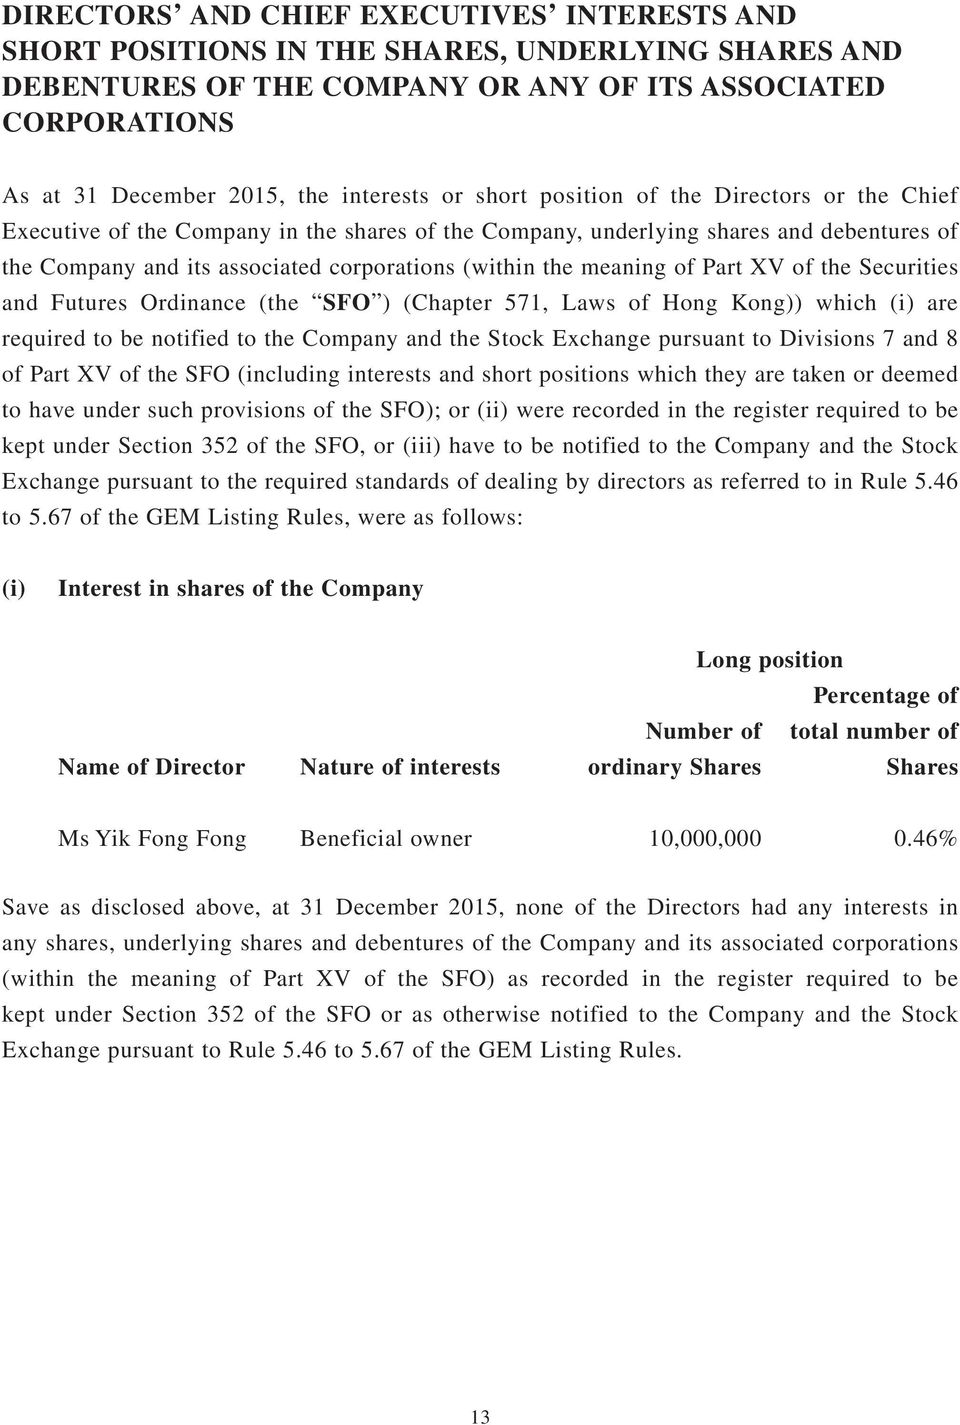 Part XV of the Securities and Futures Ordinance (the SFO ) (Chapter 571, Laws of Hong Kong)) which (i) are required to be notified to the Company and the Stock Exchange pursuant to Divisions 7 and 8